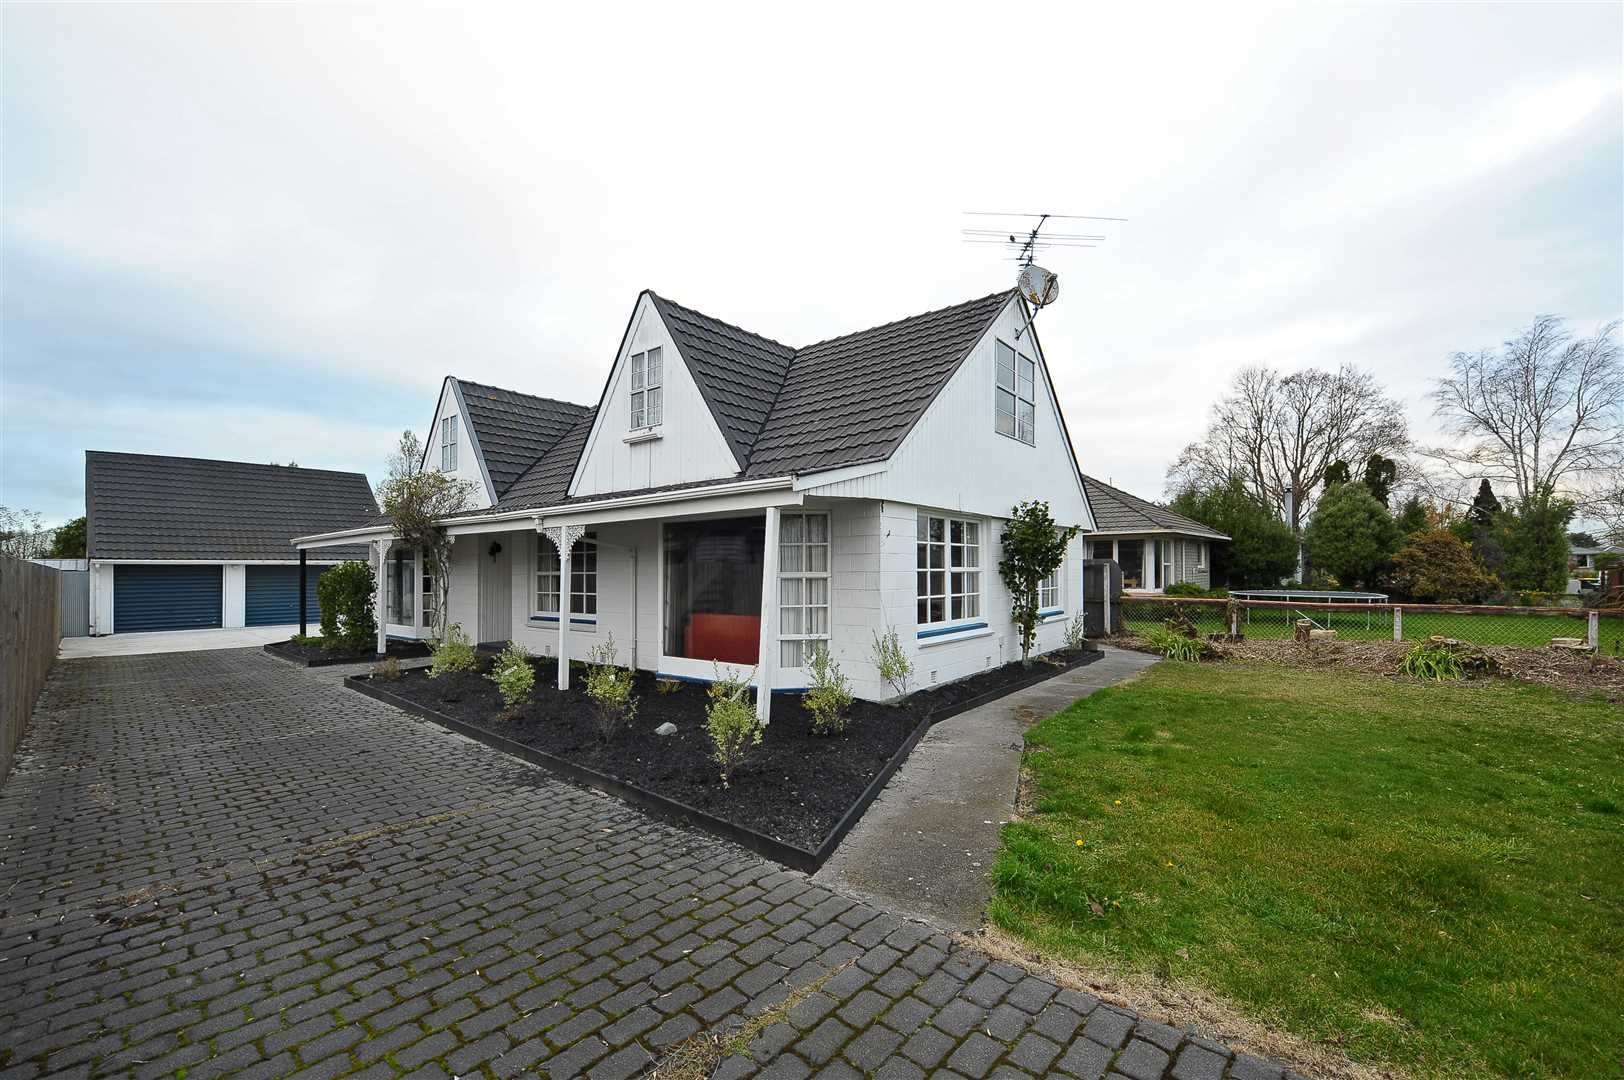 5 Bedroom Home in a Convenient Location